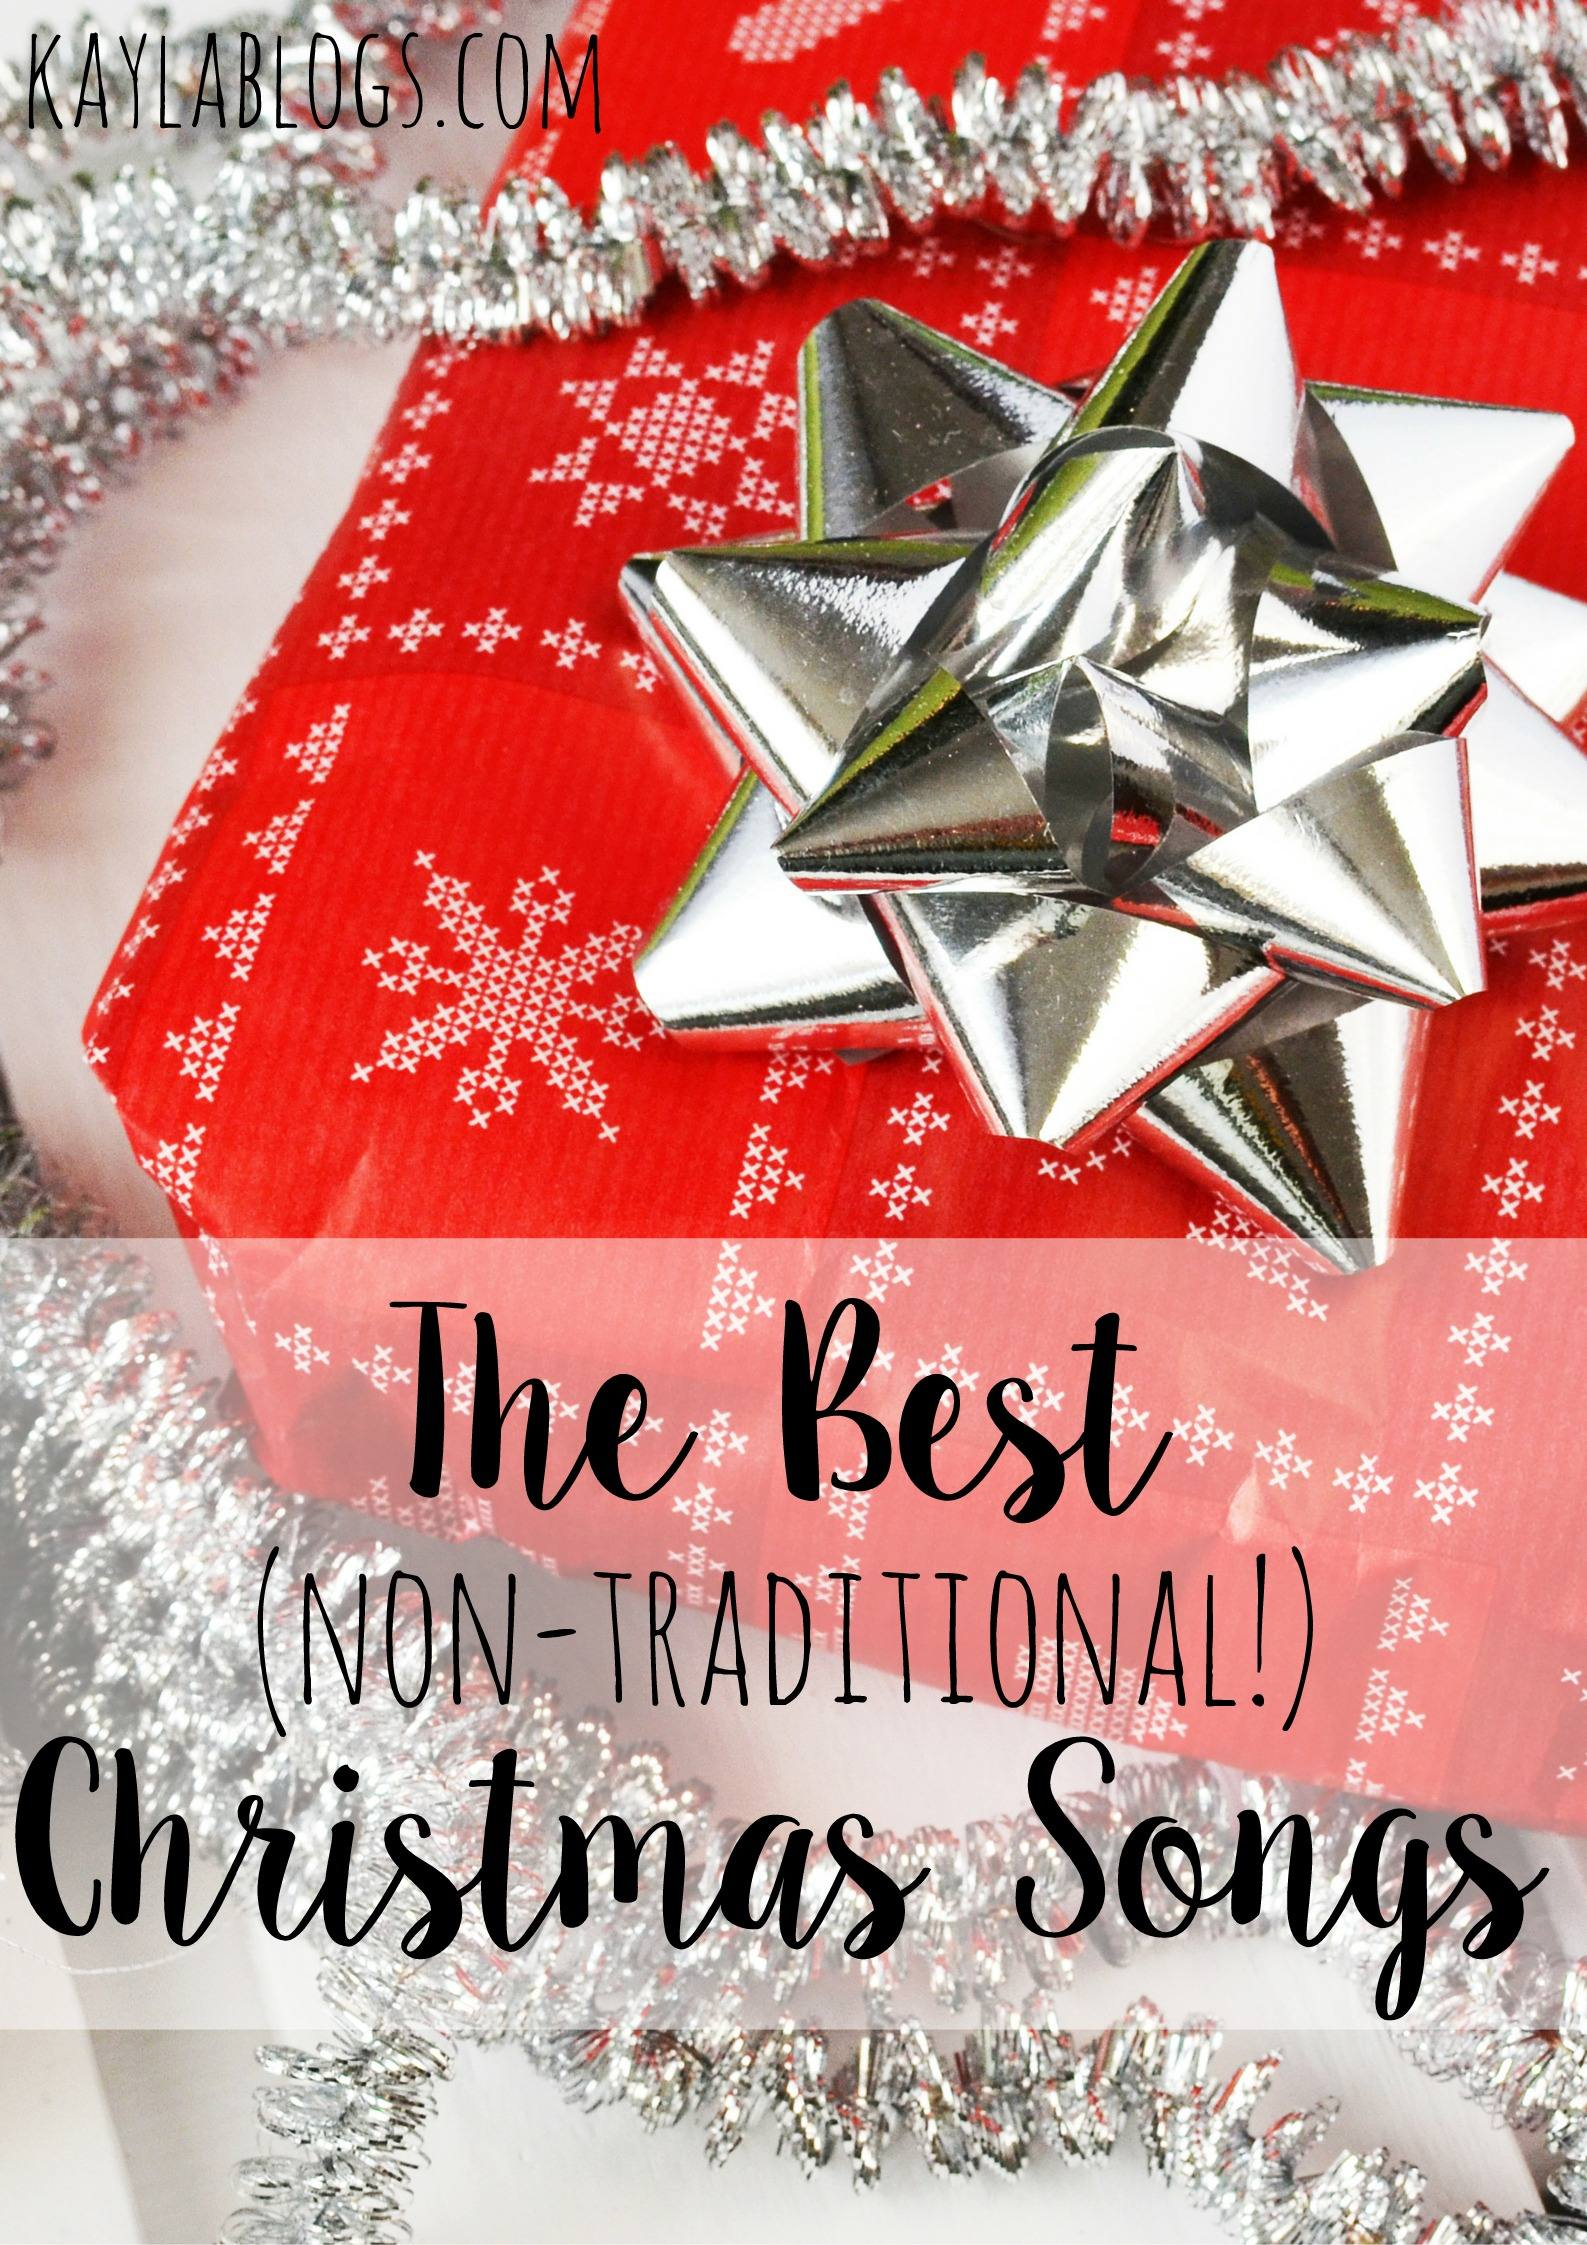 The Best (Non-Traditional!) Christmas Songs | Kayla Blogs